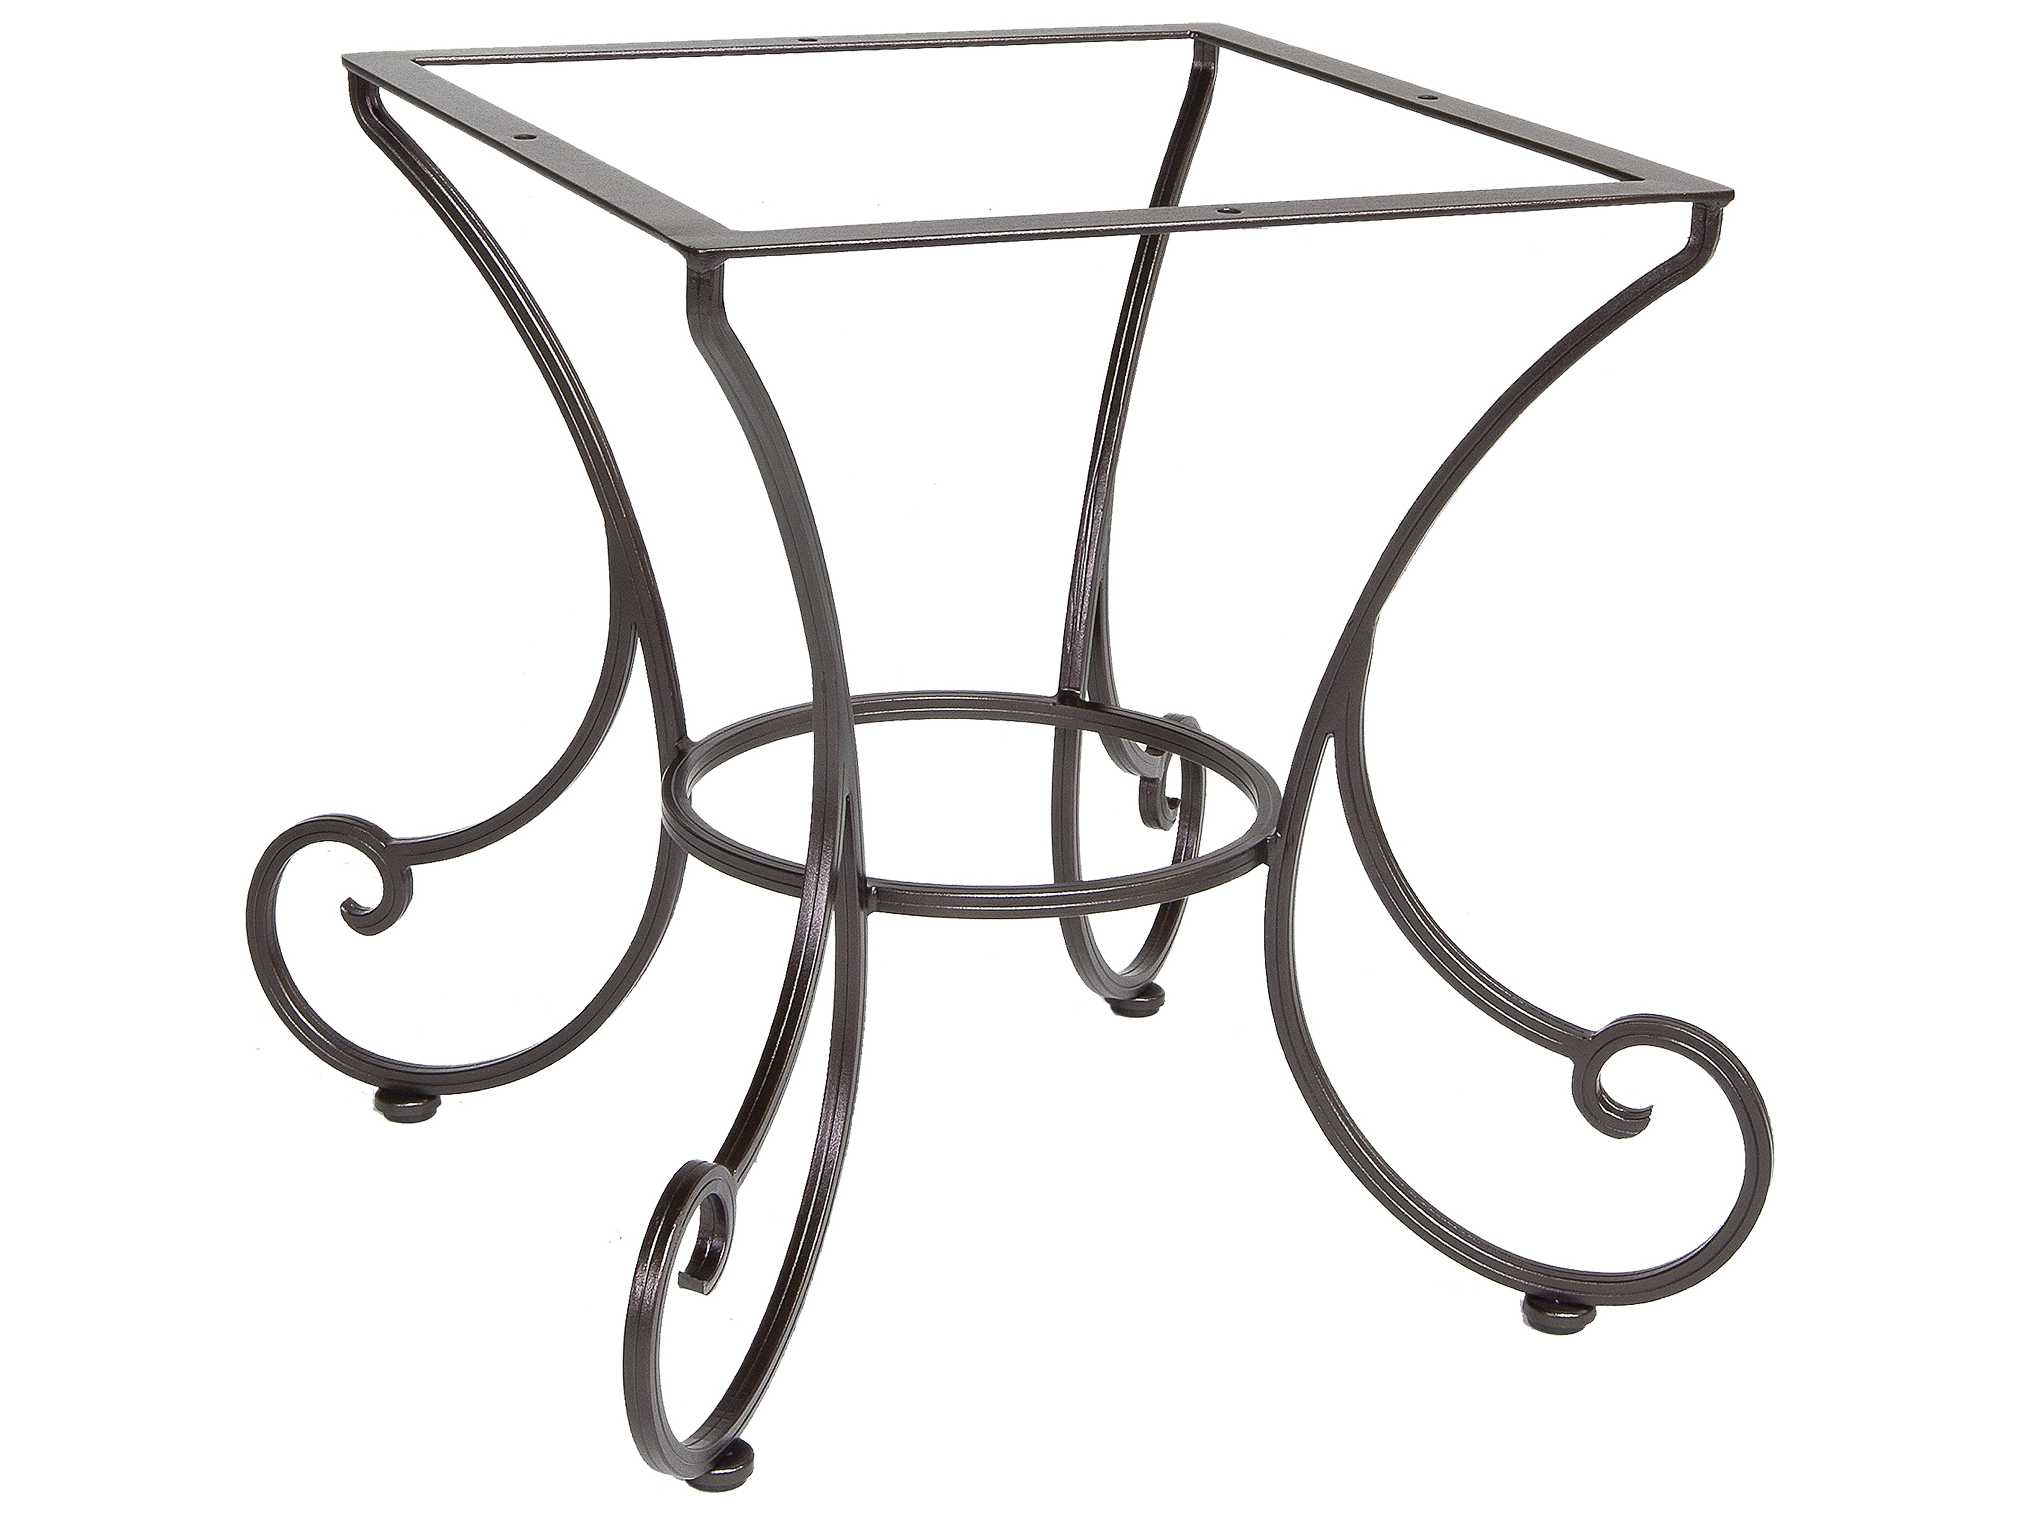 OW Lee Bellini Wrought Iron Dining Table Base 41 DT03